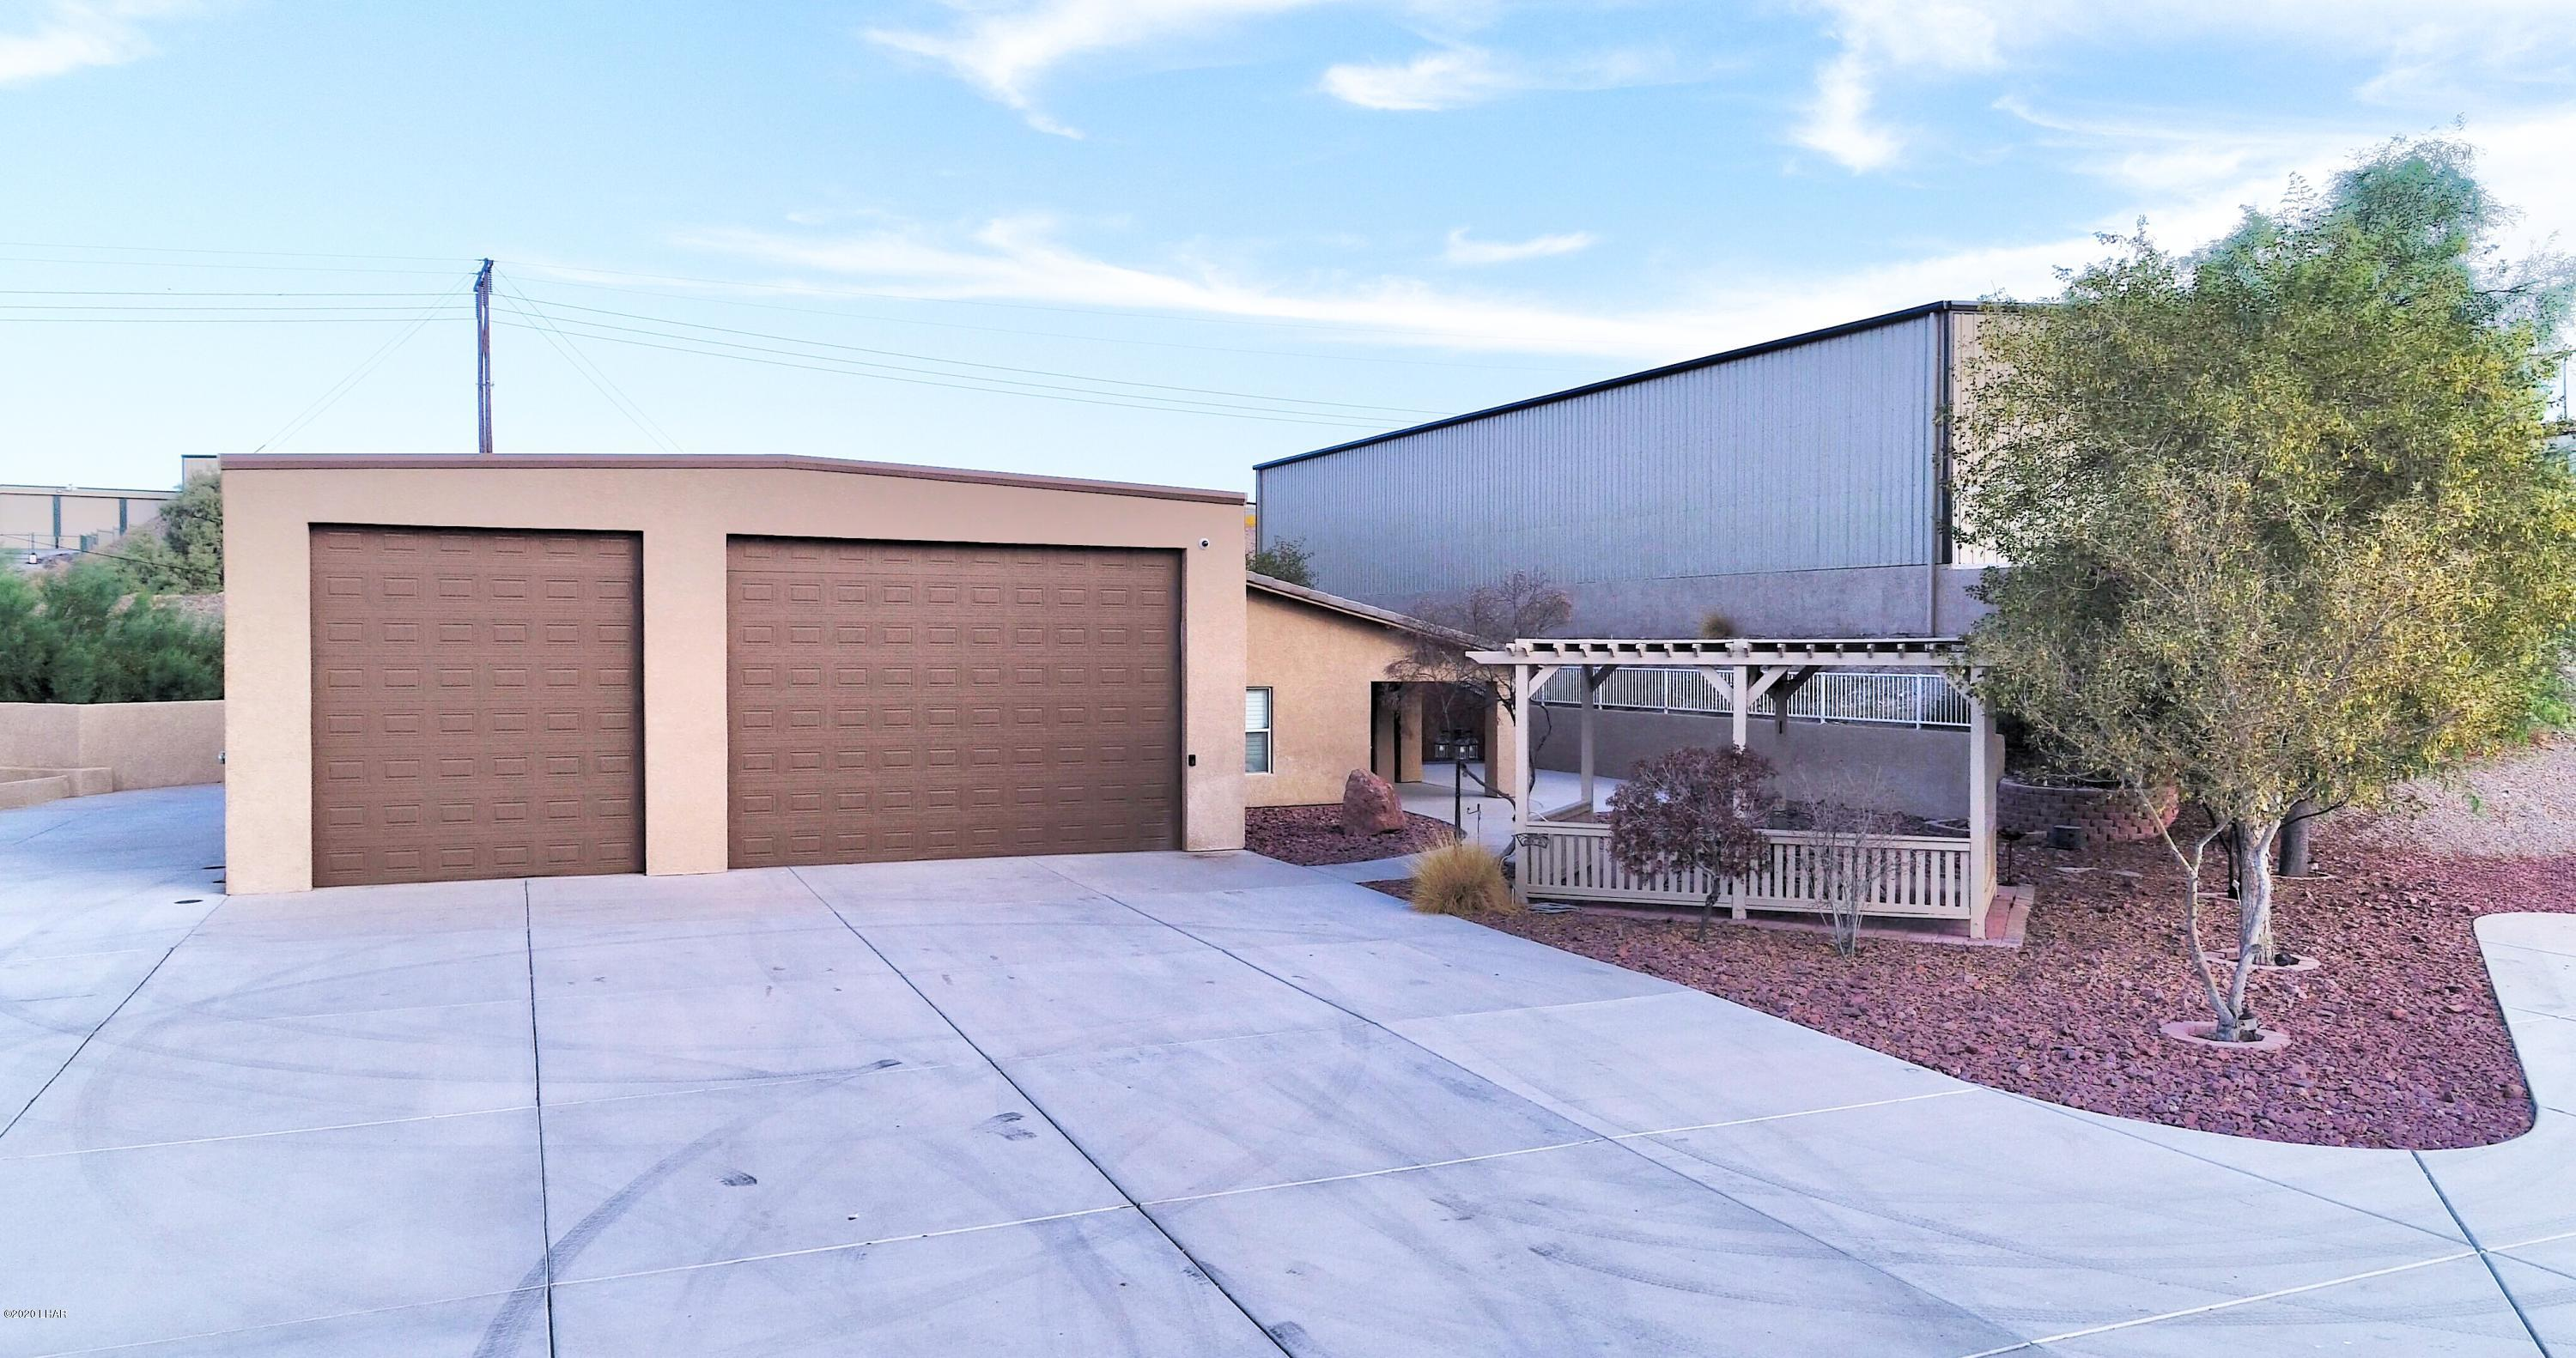 Details for 31680 Storage, Parker, AZ 85344